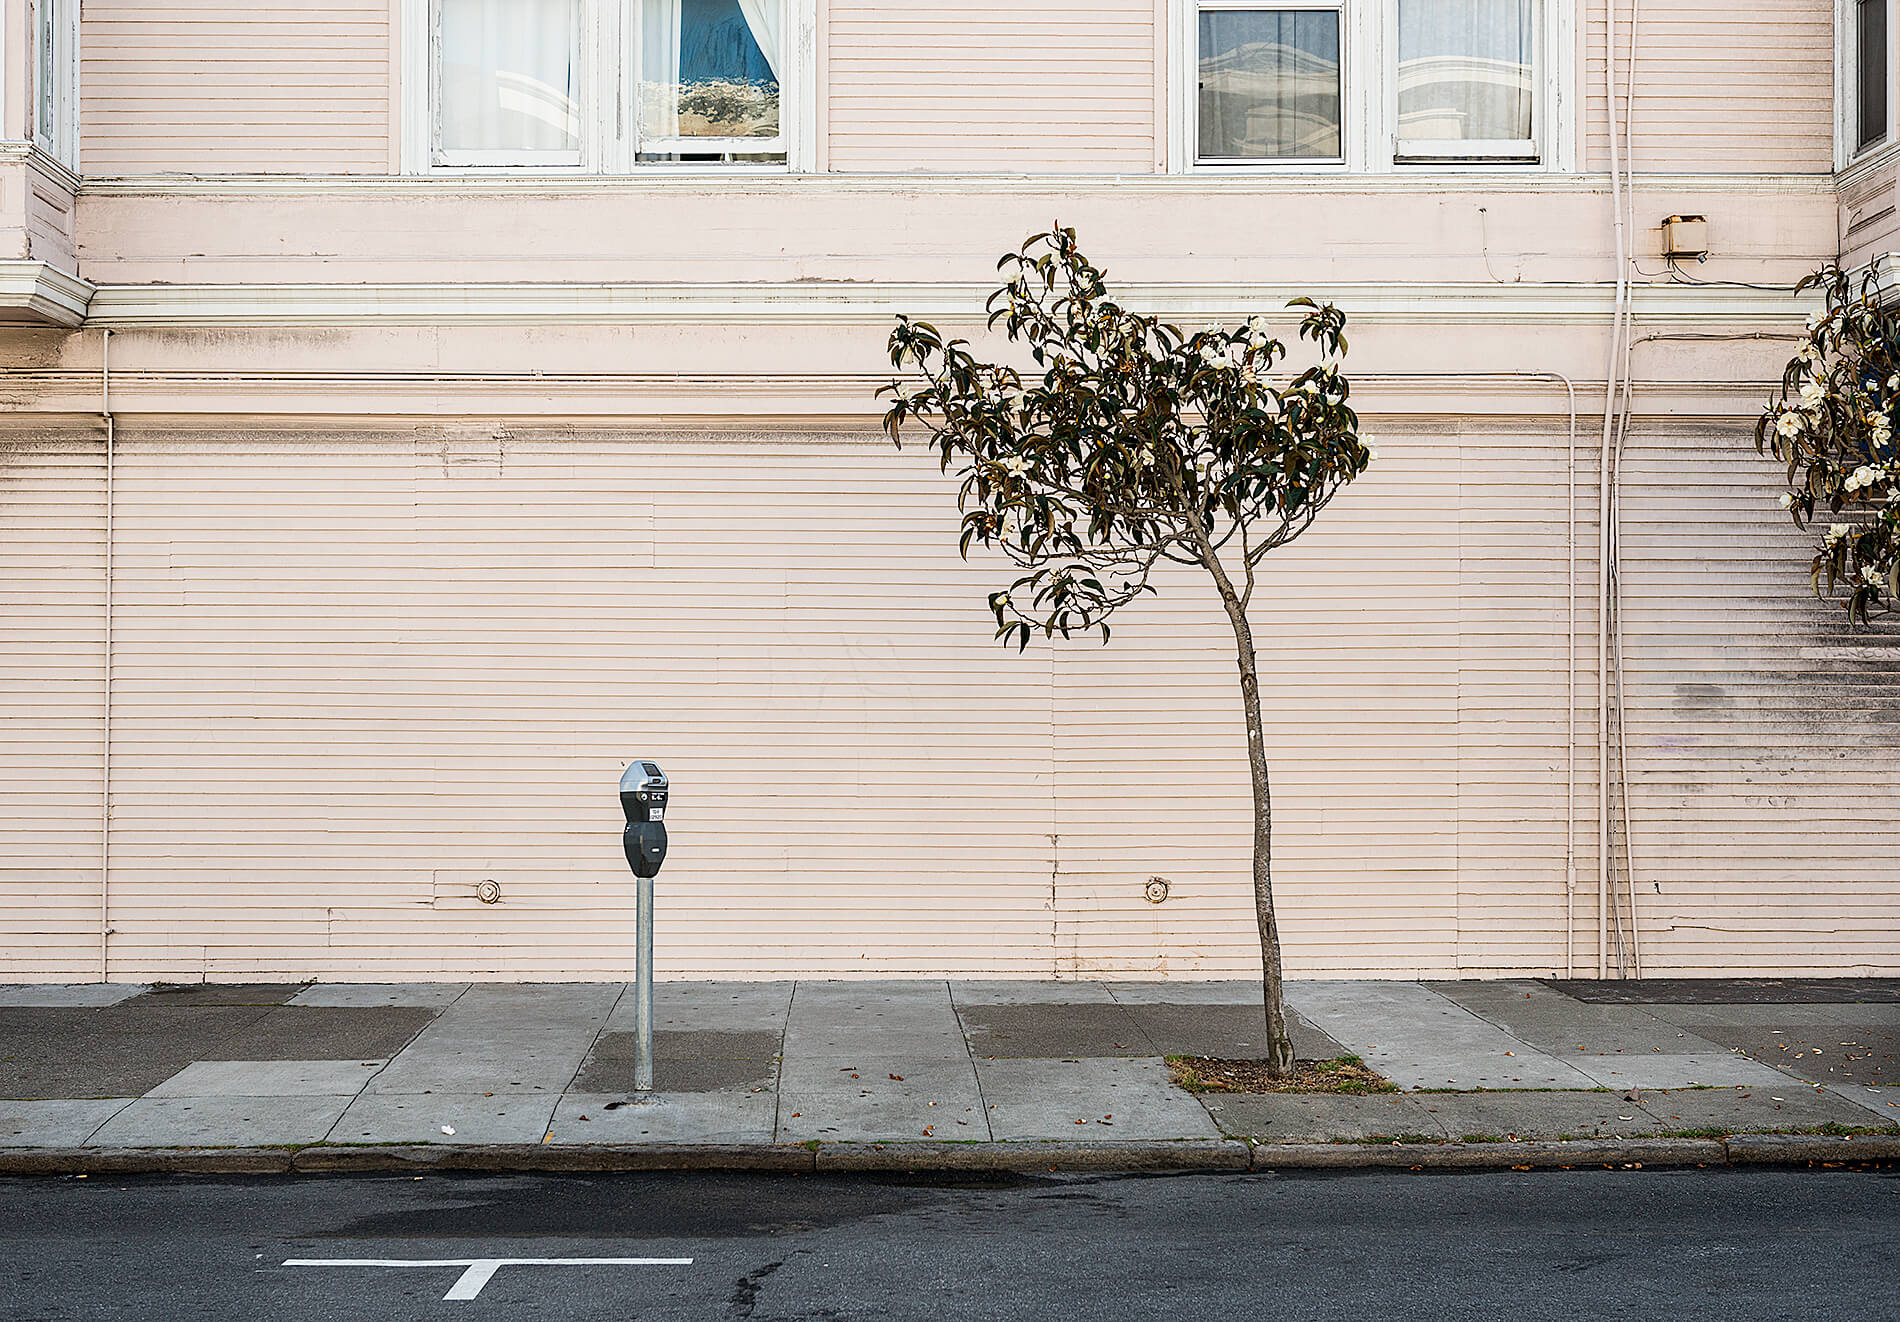 Tree and parking meter